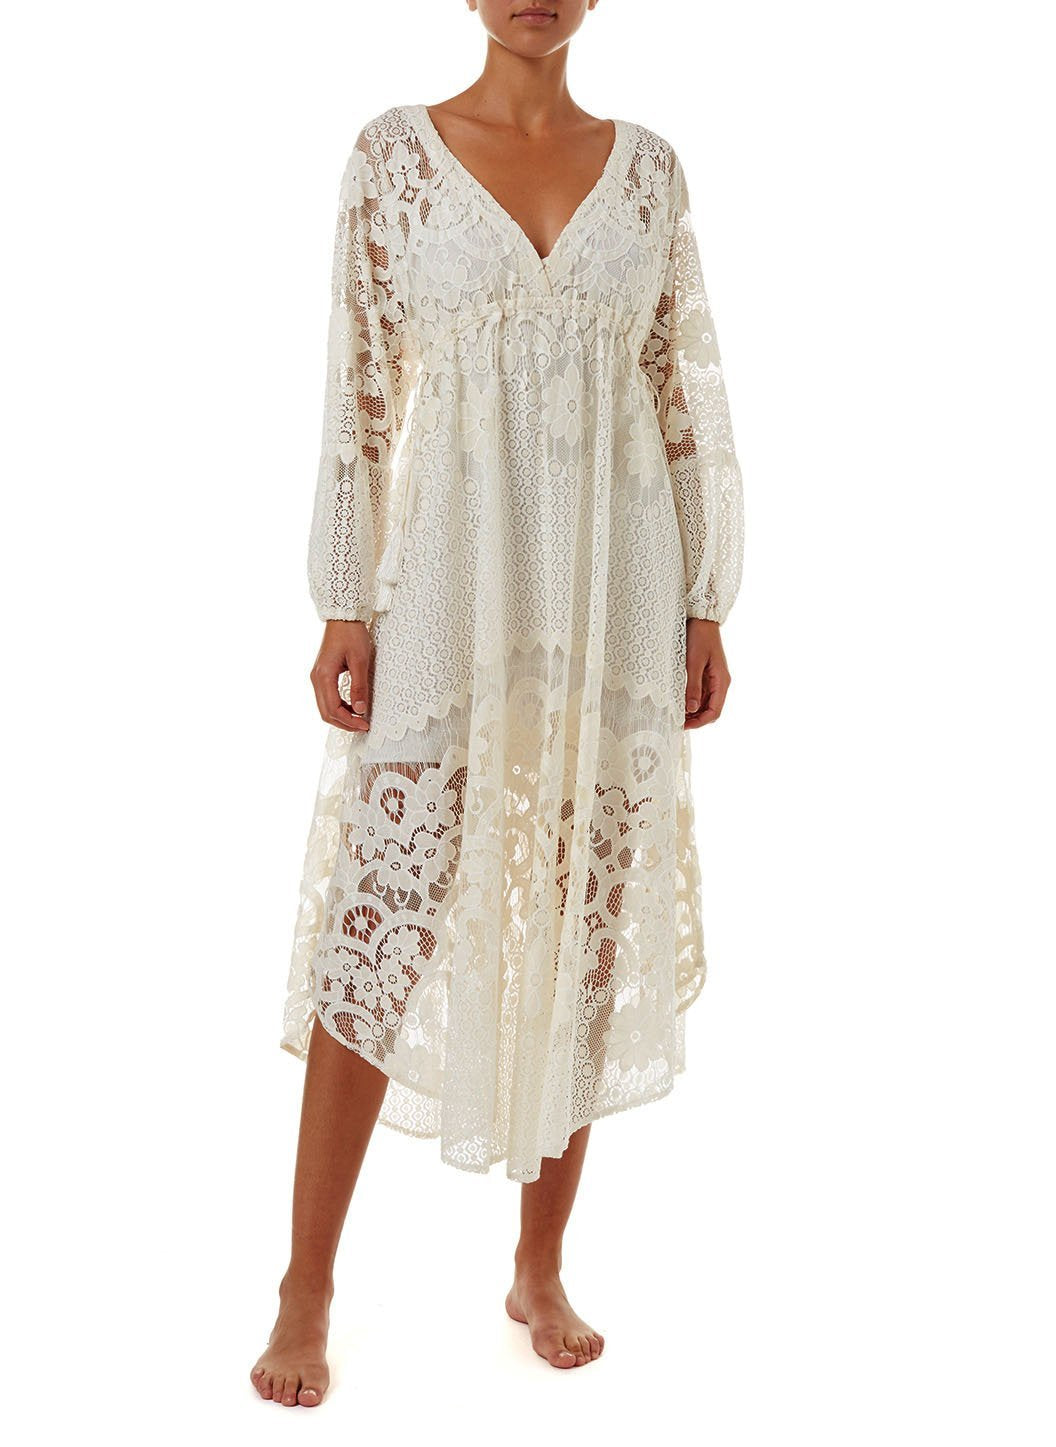 melissa cream lace tieside midi dress 2019 F